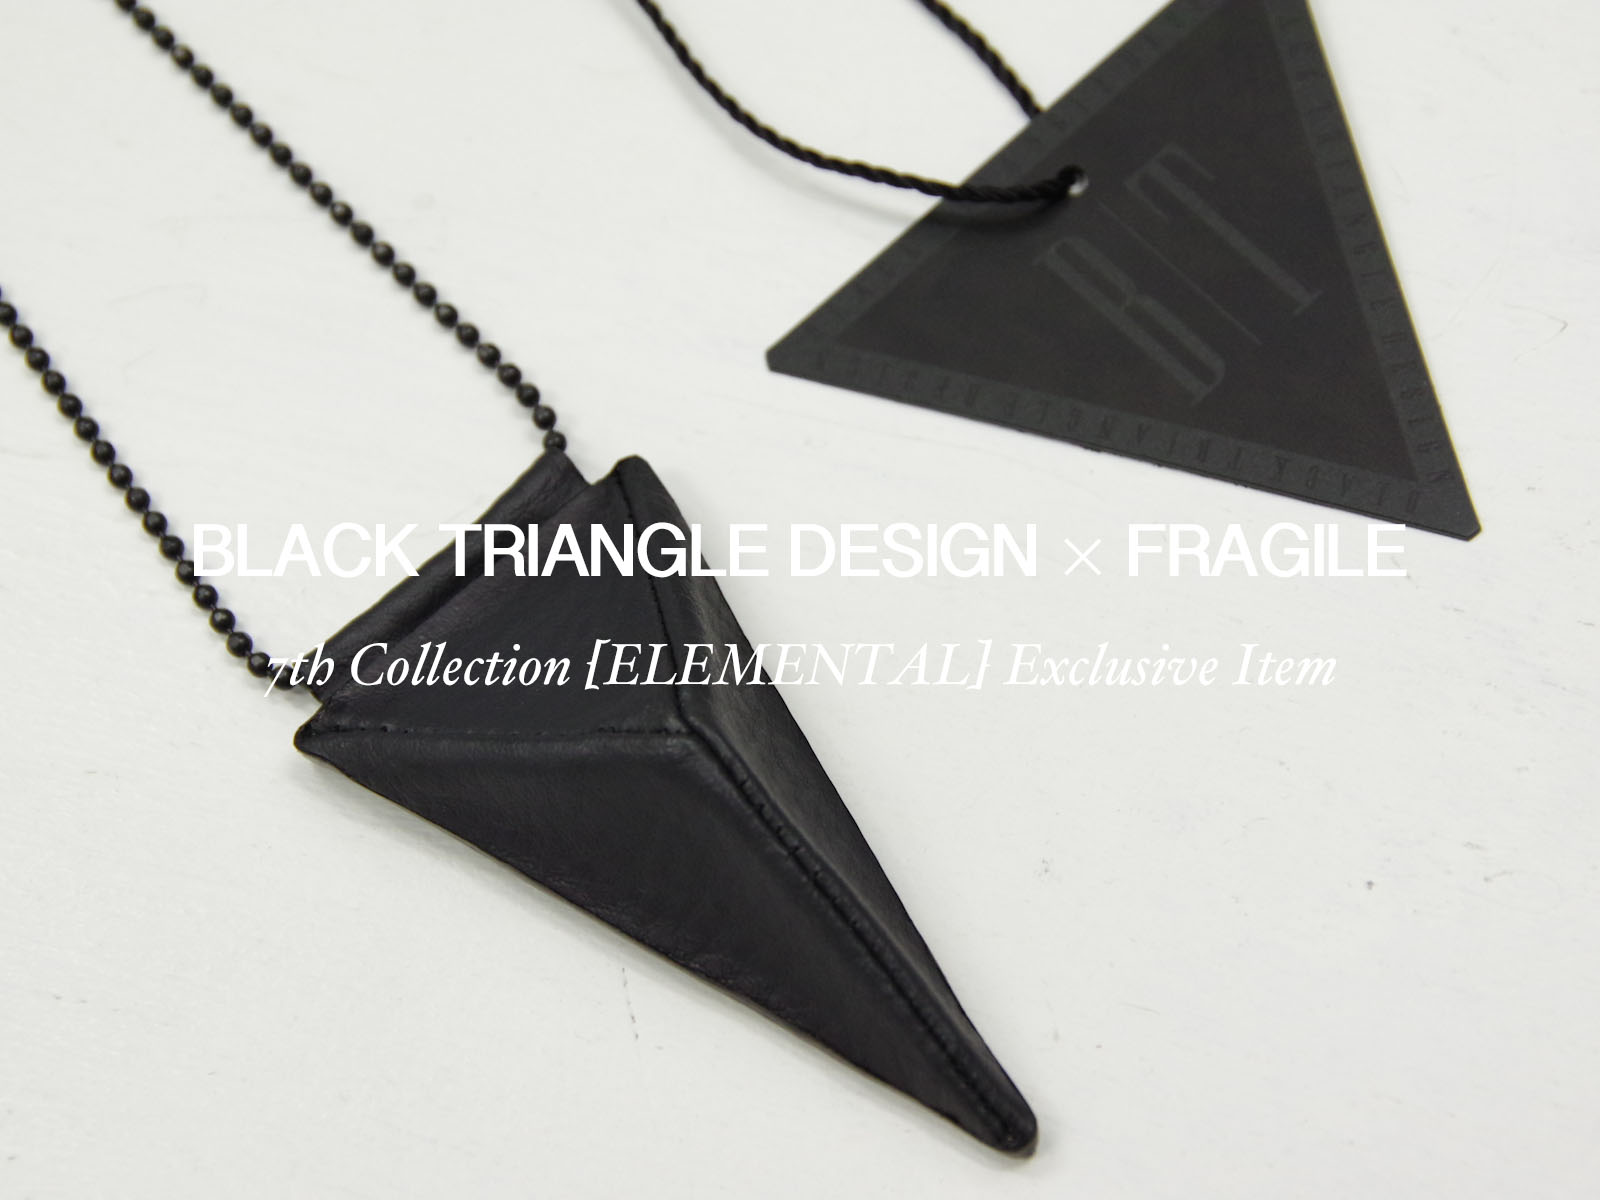 BLACK TRIANGLE DESIGN × FRAGILE 7th Collection [ELEMENTAL] Exclusive Item